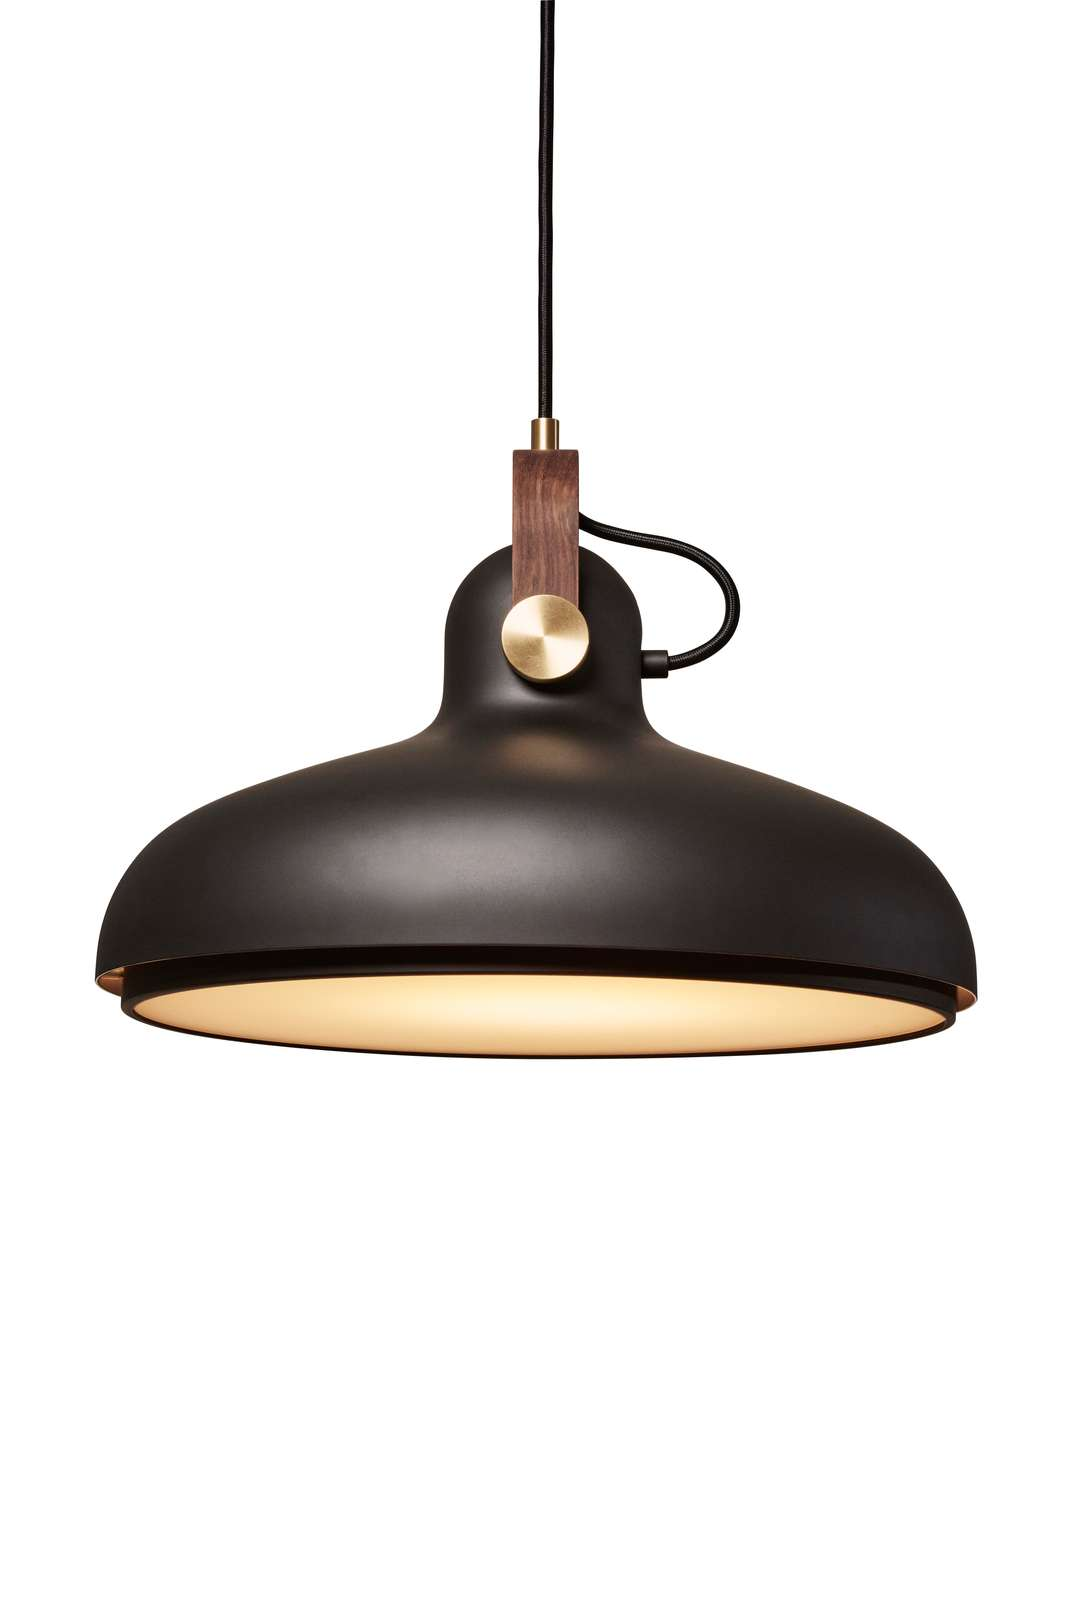 Le Klint Pendant Replica Suspension Carronade Large Le Klint Melville Design